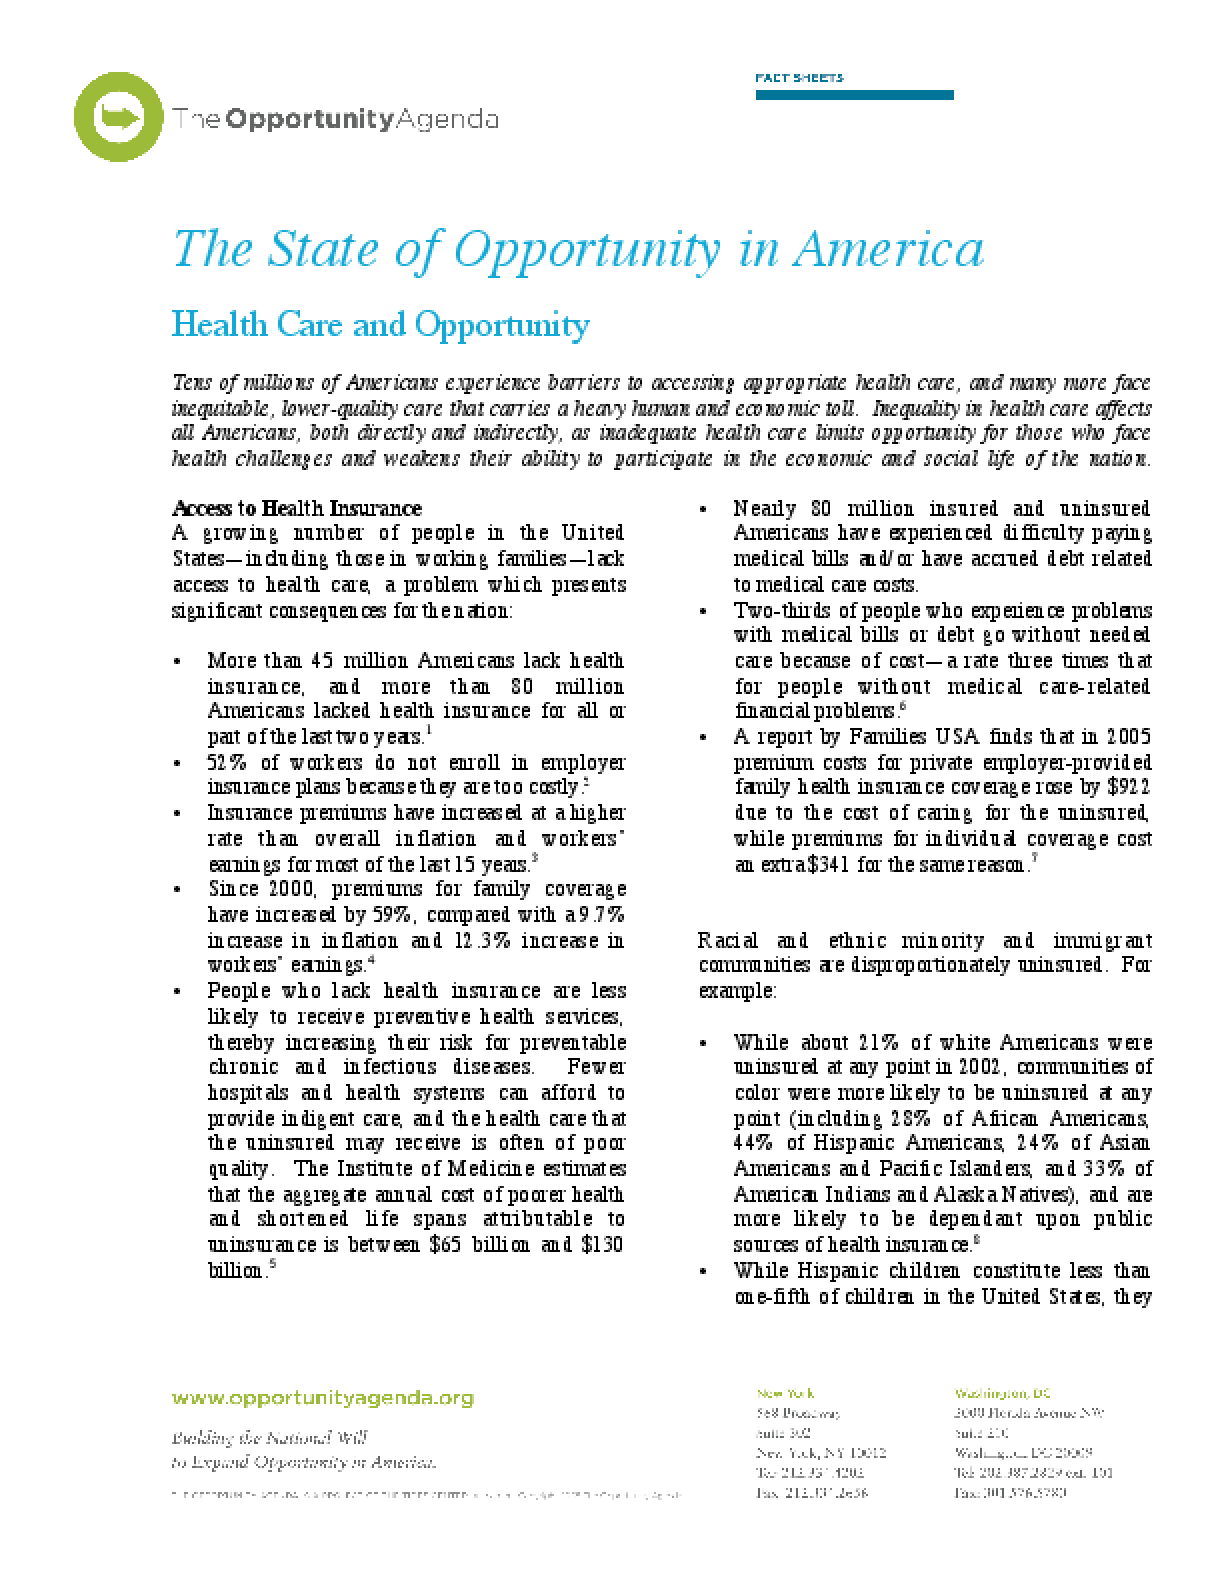 Health Care and Opportunity